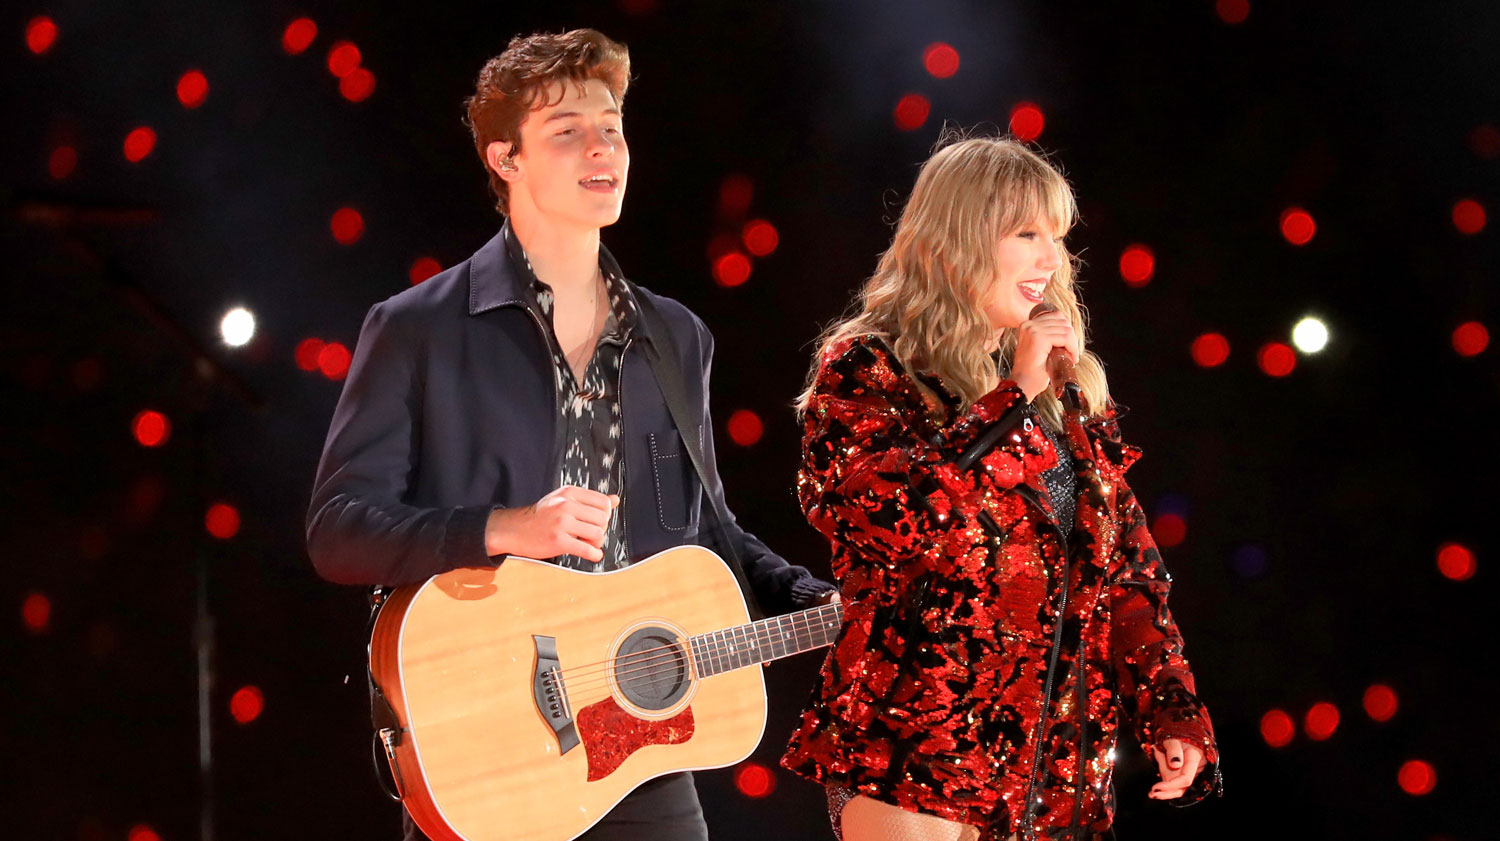 Shawn Mendes And Taylor Swift Tour